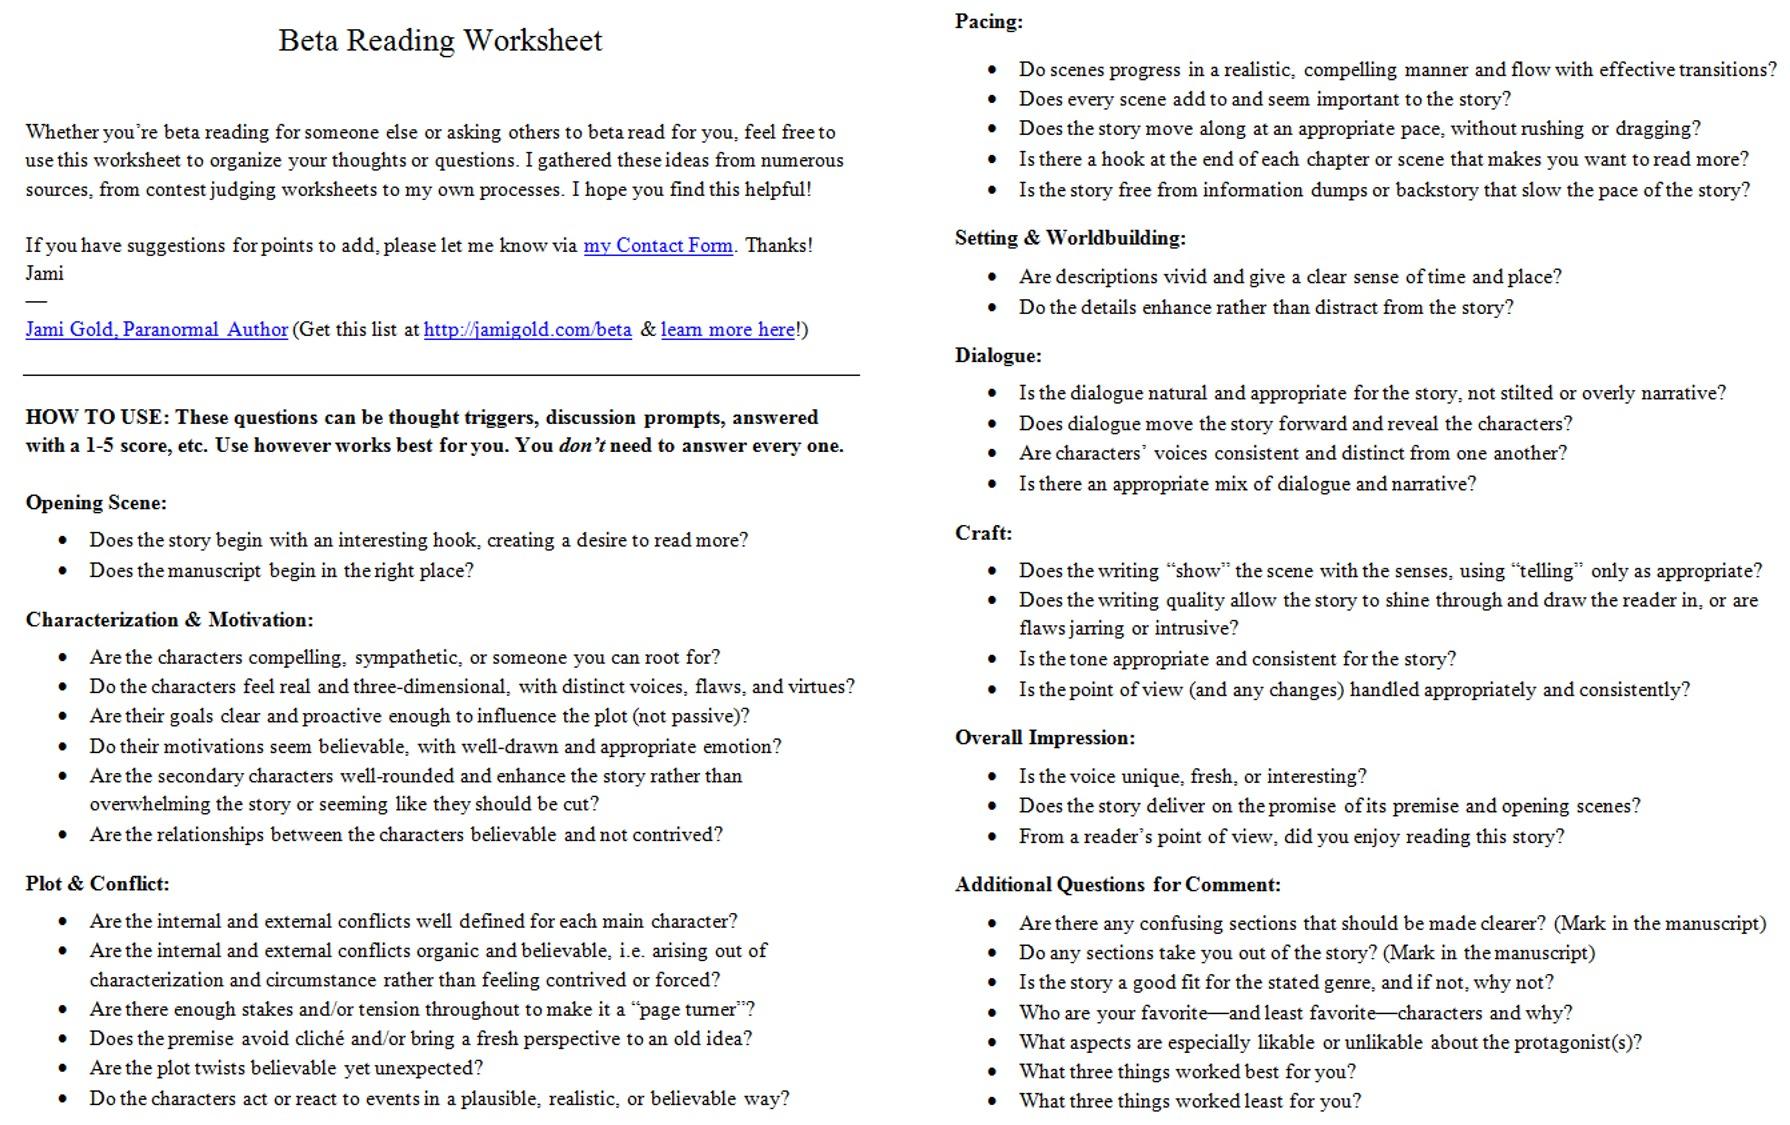 Aldiablosus  Prepossessing Worksheets For Writers  Jami Gold Paranormal Author With Goodlooking Screen Shot Of The Twopage Beta Reading Worksheet With Attractive Free Times Tables Worksheets Also Rounding Decimals Worksheets Th Grade In Addition Basic Geometry Worksheets Pdf And Tracing Sight Words Worksheets As Well As Making A Line Plot Worksheet Additionally Na  Steps Worksheets From Jamigoldcom With Aldiablosus  Goodlooking Worksheets For Writers  Jami Gold Paranormal Author With Attractive Screen Shot Of The Twopage Beta Reading Worksheet And Prepossessing Free Times Tables Worksheets Also Rounding Decimals Worksheets Th Grade In Addition Basic Geometry Worksheets Pdf From Jamigoldcom